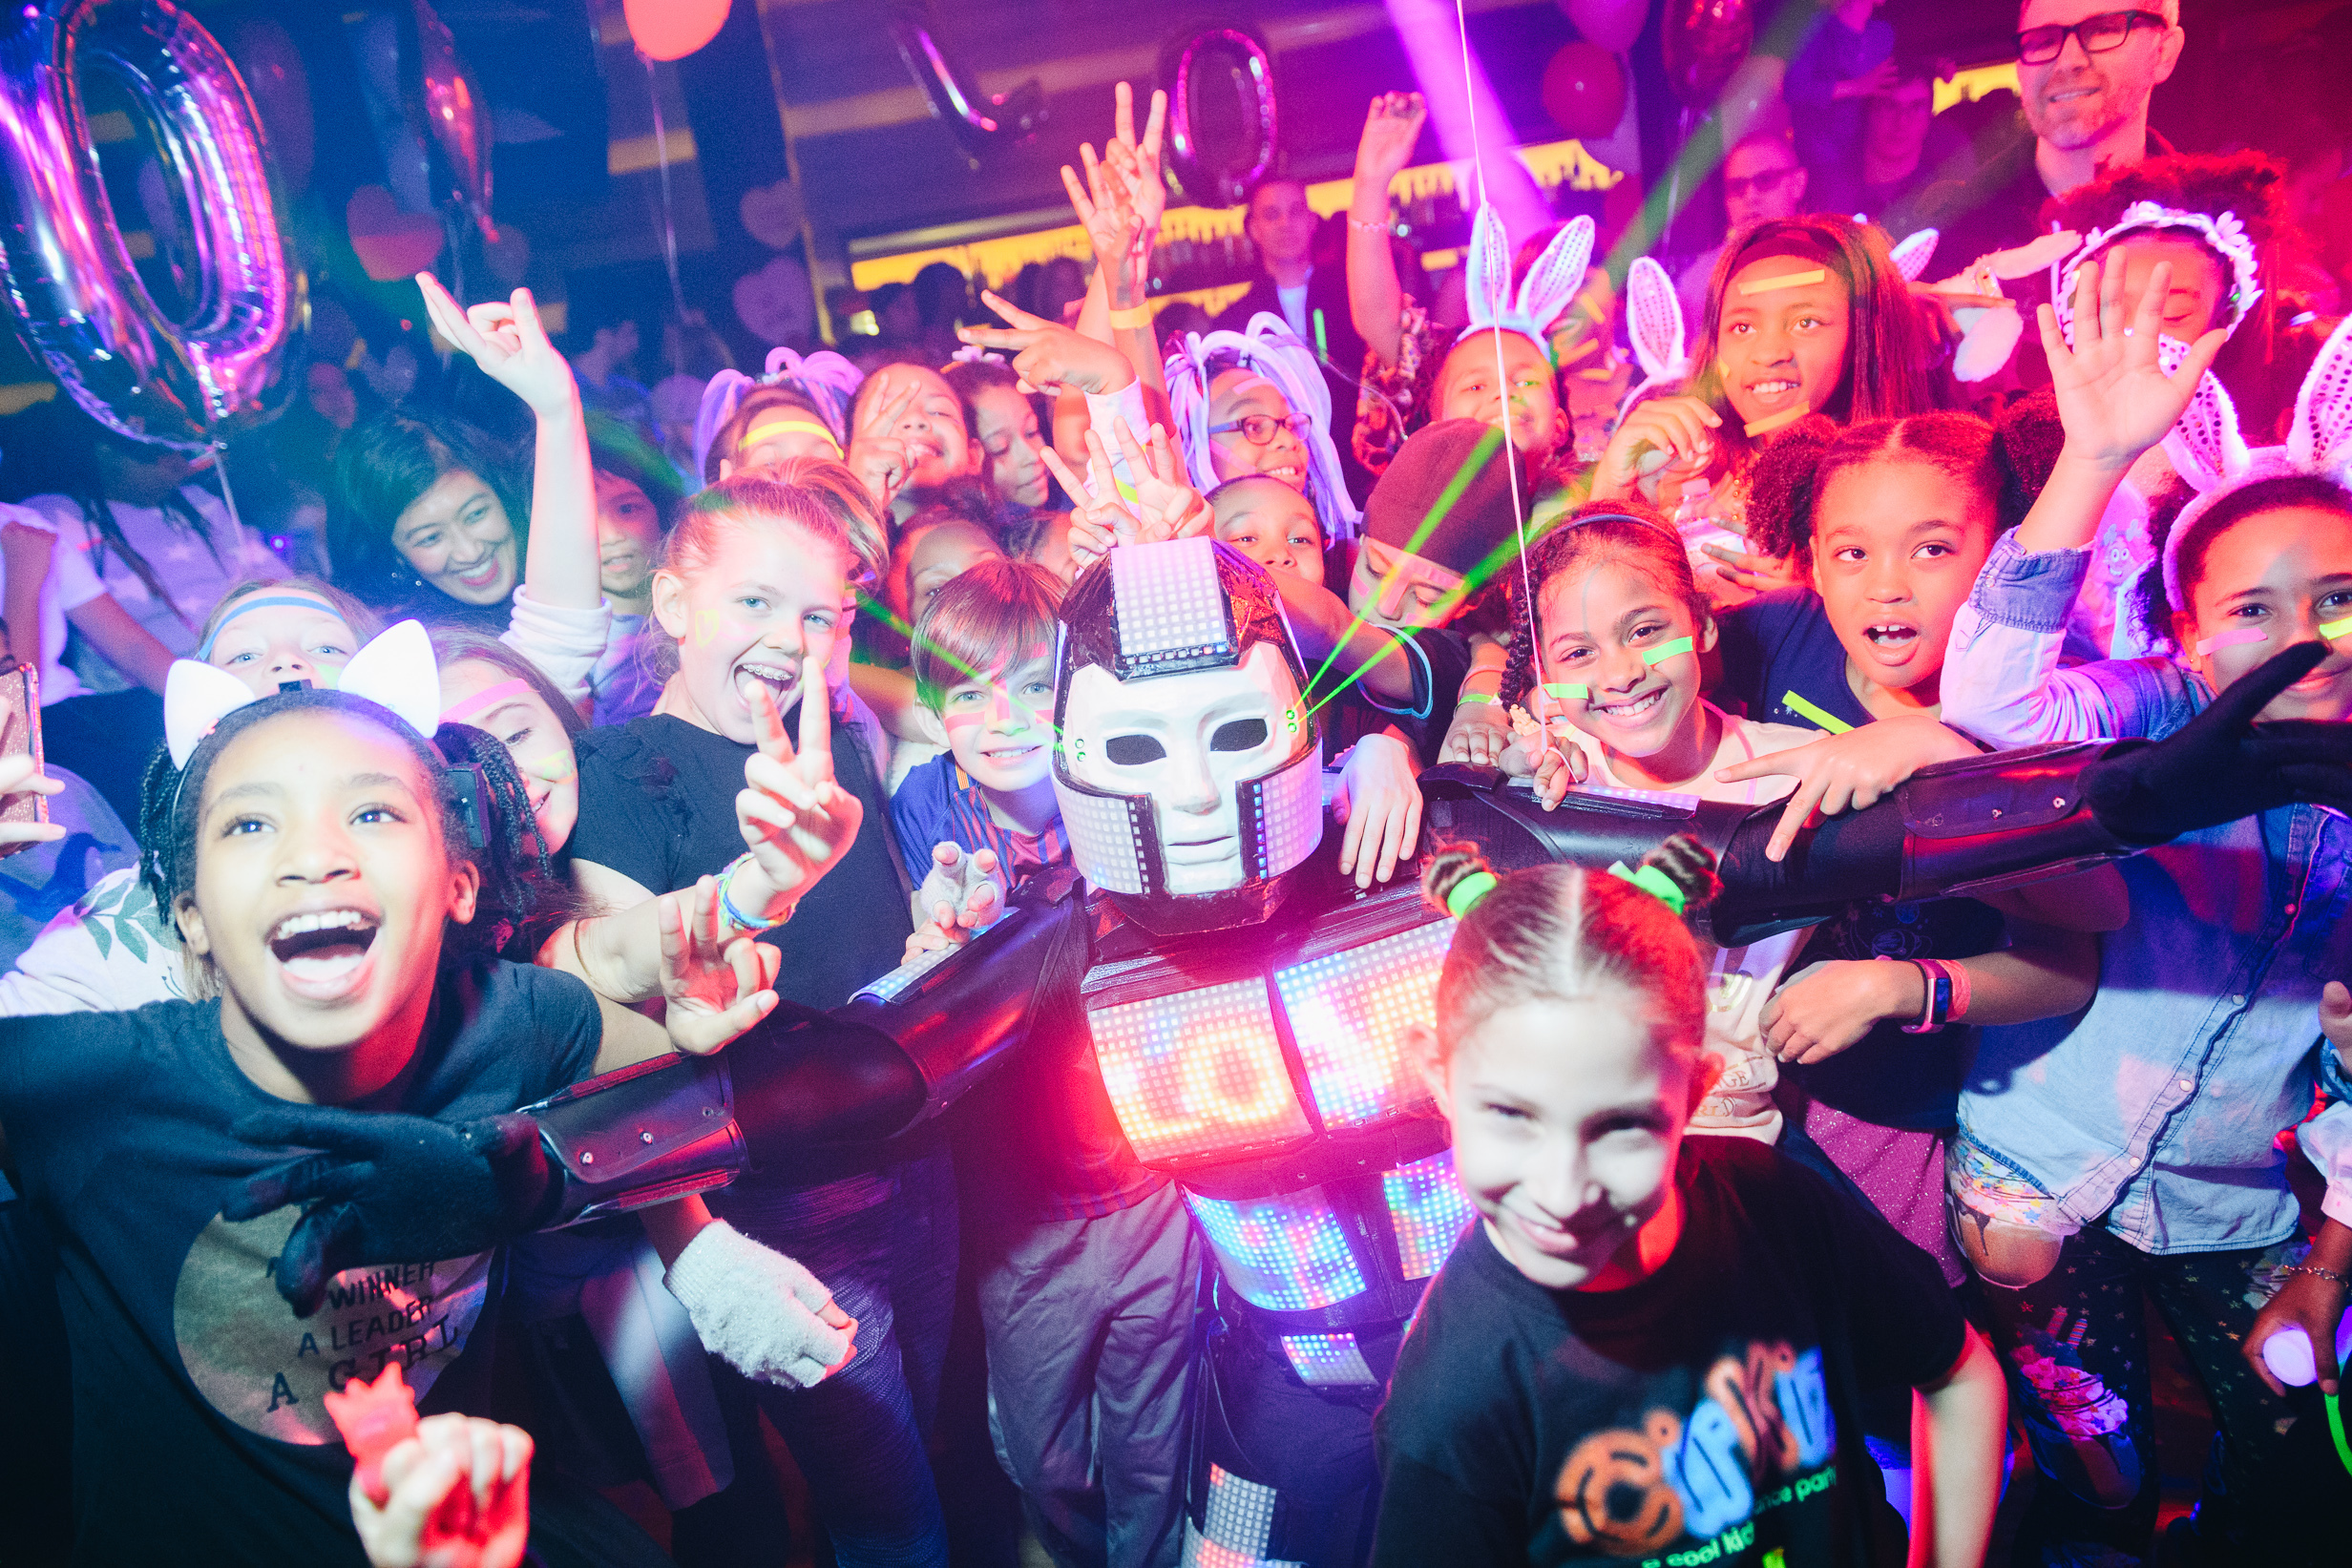 Dance Parties For Kids In Nyc Who Want To Bust A Move